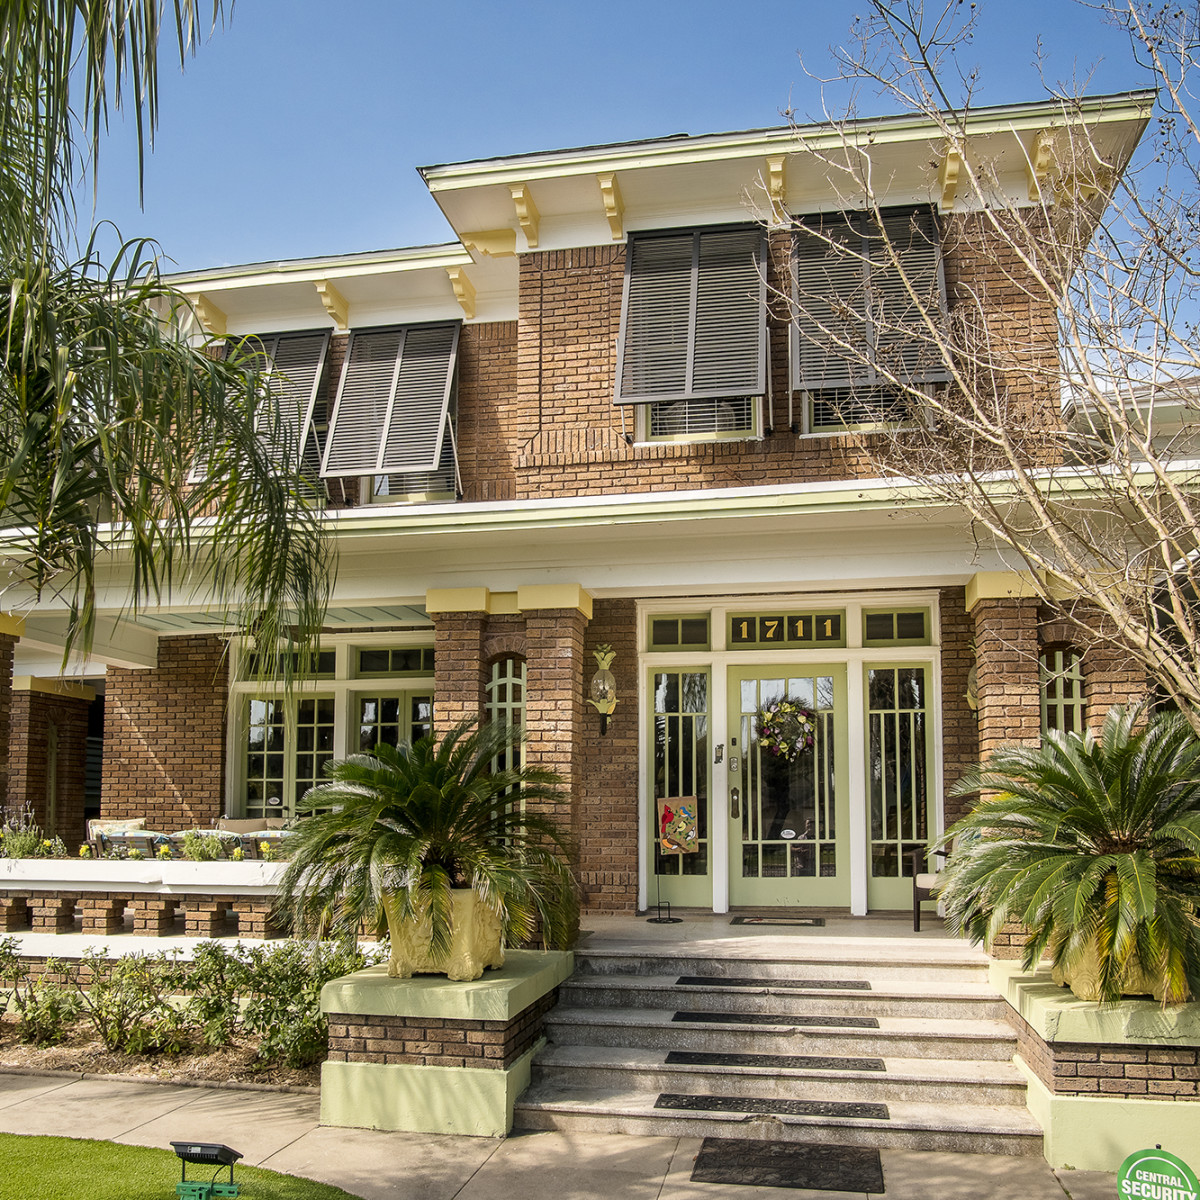 Galveston Historic Home Tour